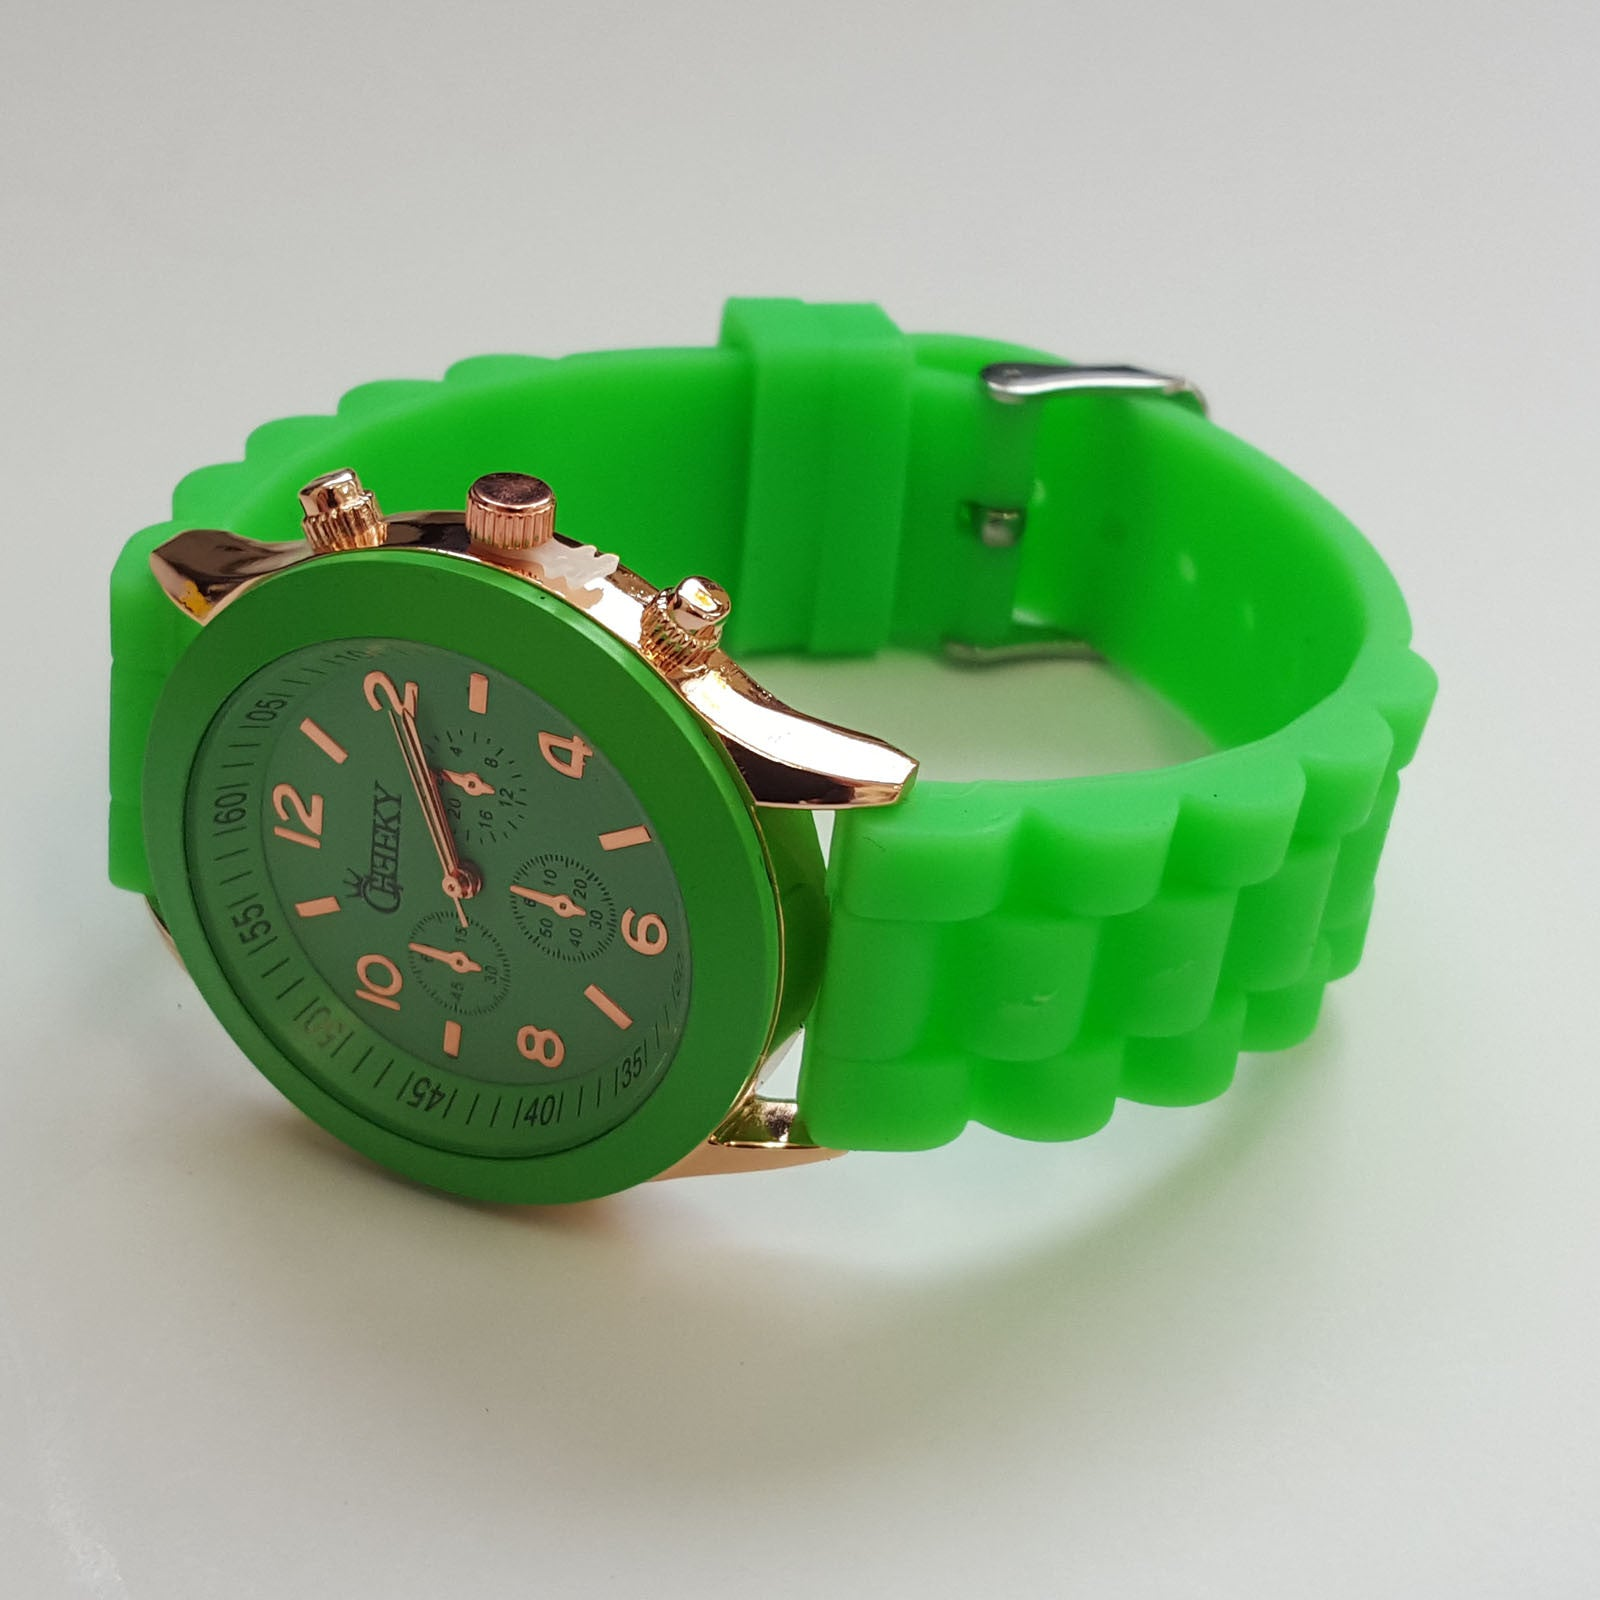 ferro face agl green dial quartz watch watches next products pilot copy chrono